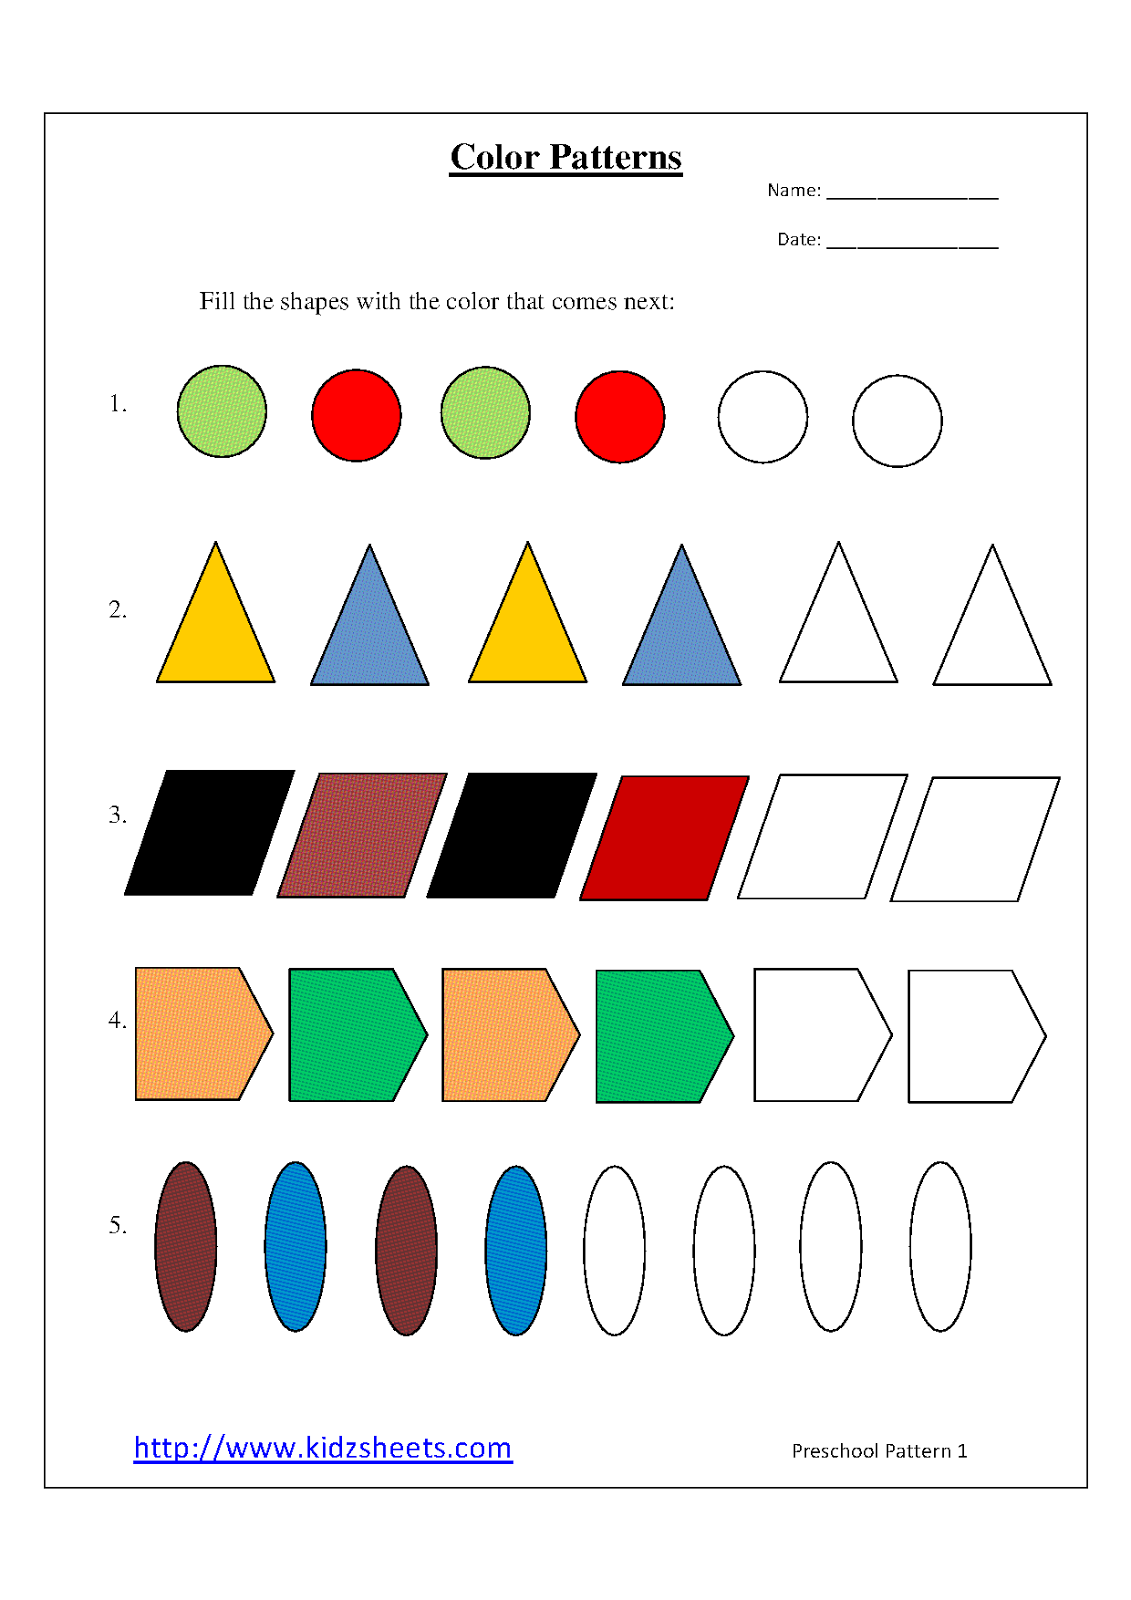 preschool color patterns - Preschool Color Worksheets Free